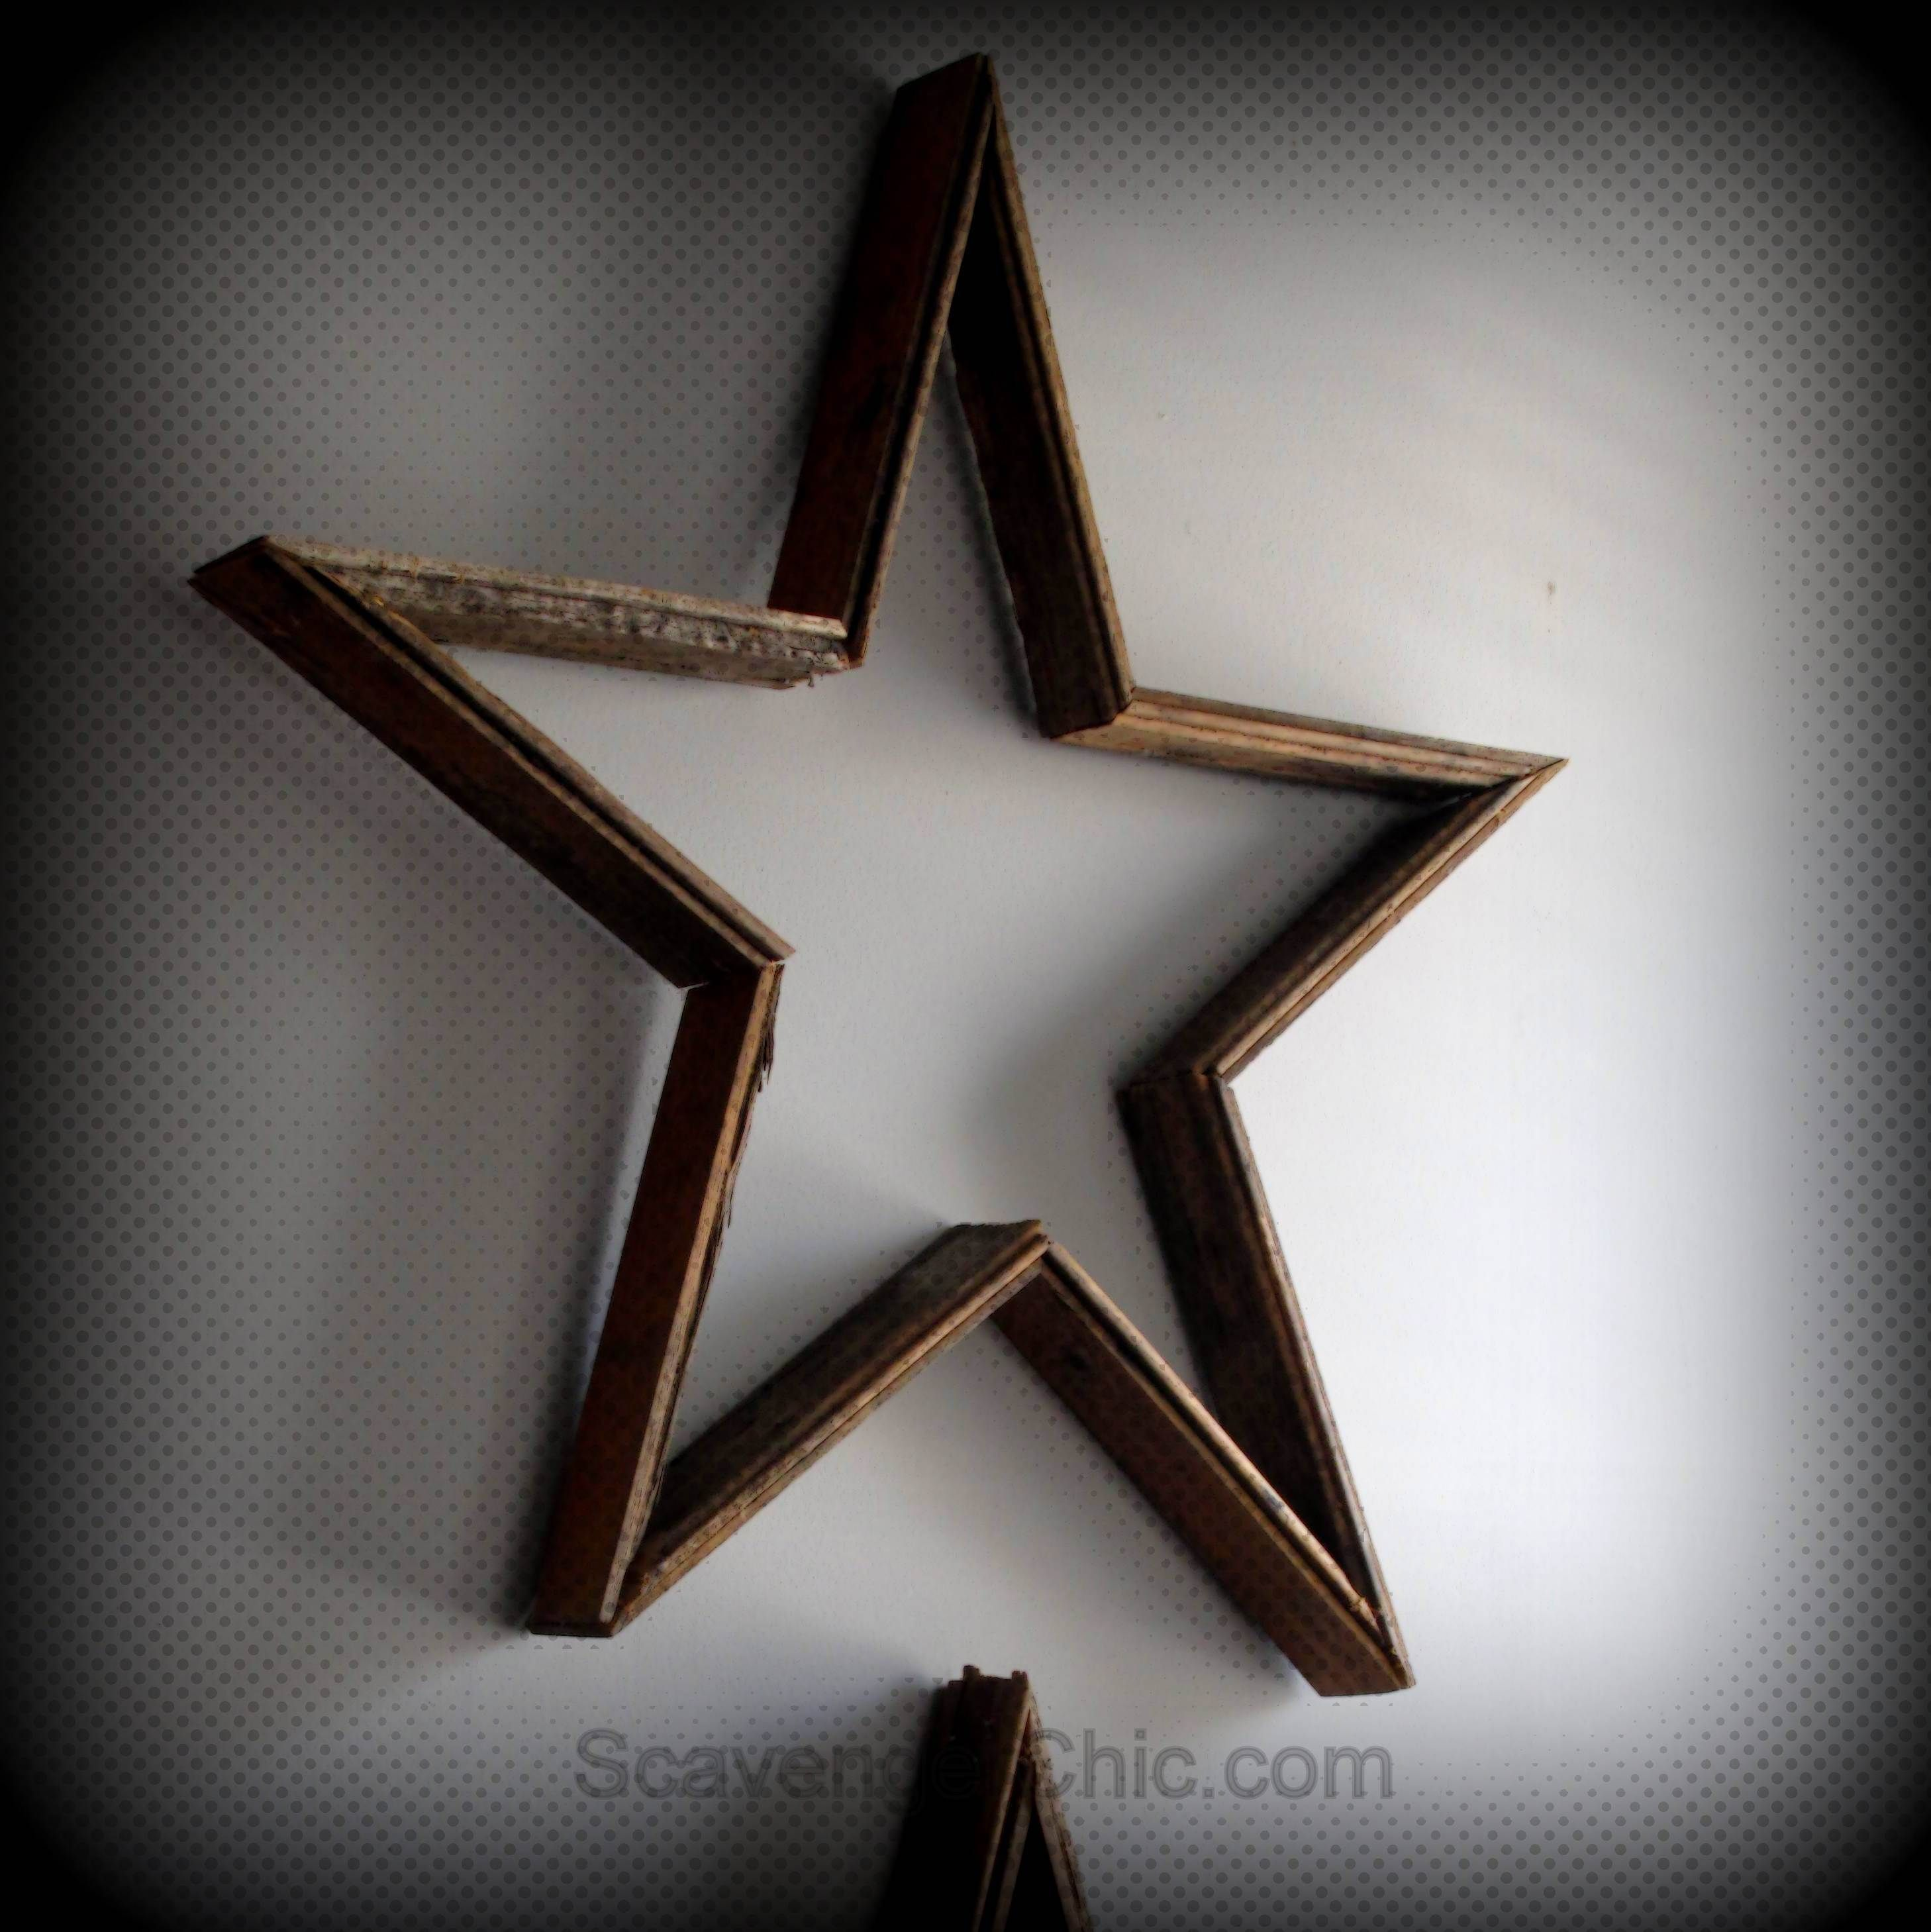 Reclaimed Wood Projects Reclaimed Wood Star Star Made From Old Oak Flooring Reclaimed